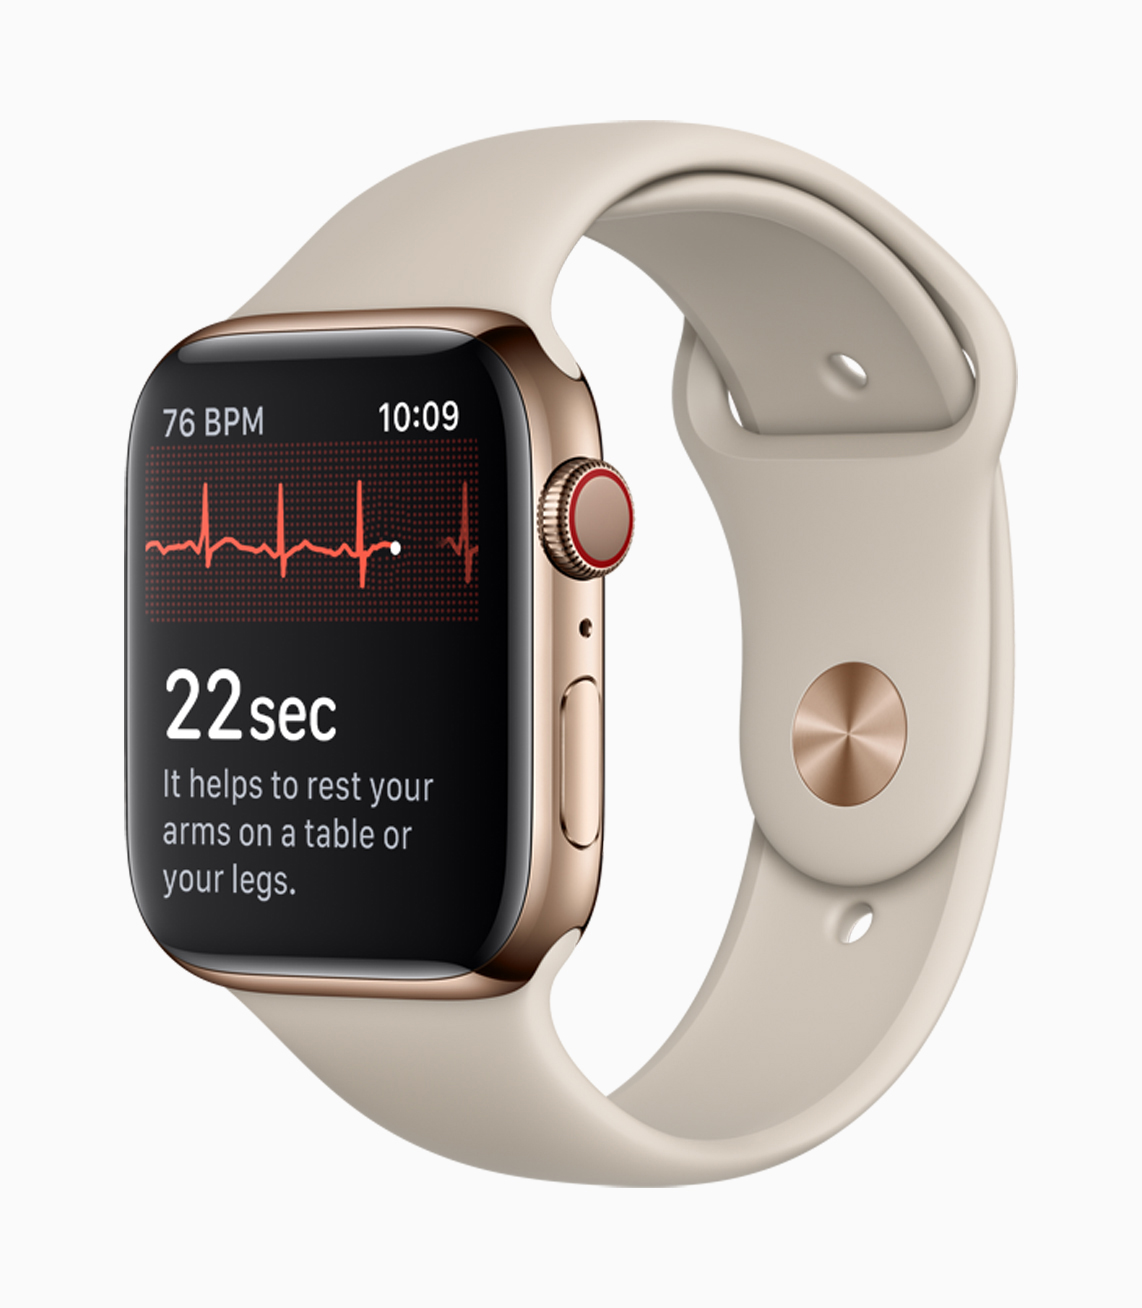 watchOS 5.1.2 Update, Which Will Enable Apple Watch Series 4 ECG Capabilities, Likely to be Released Today